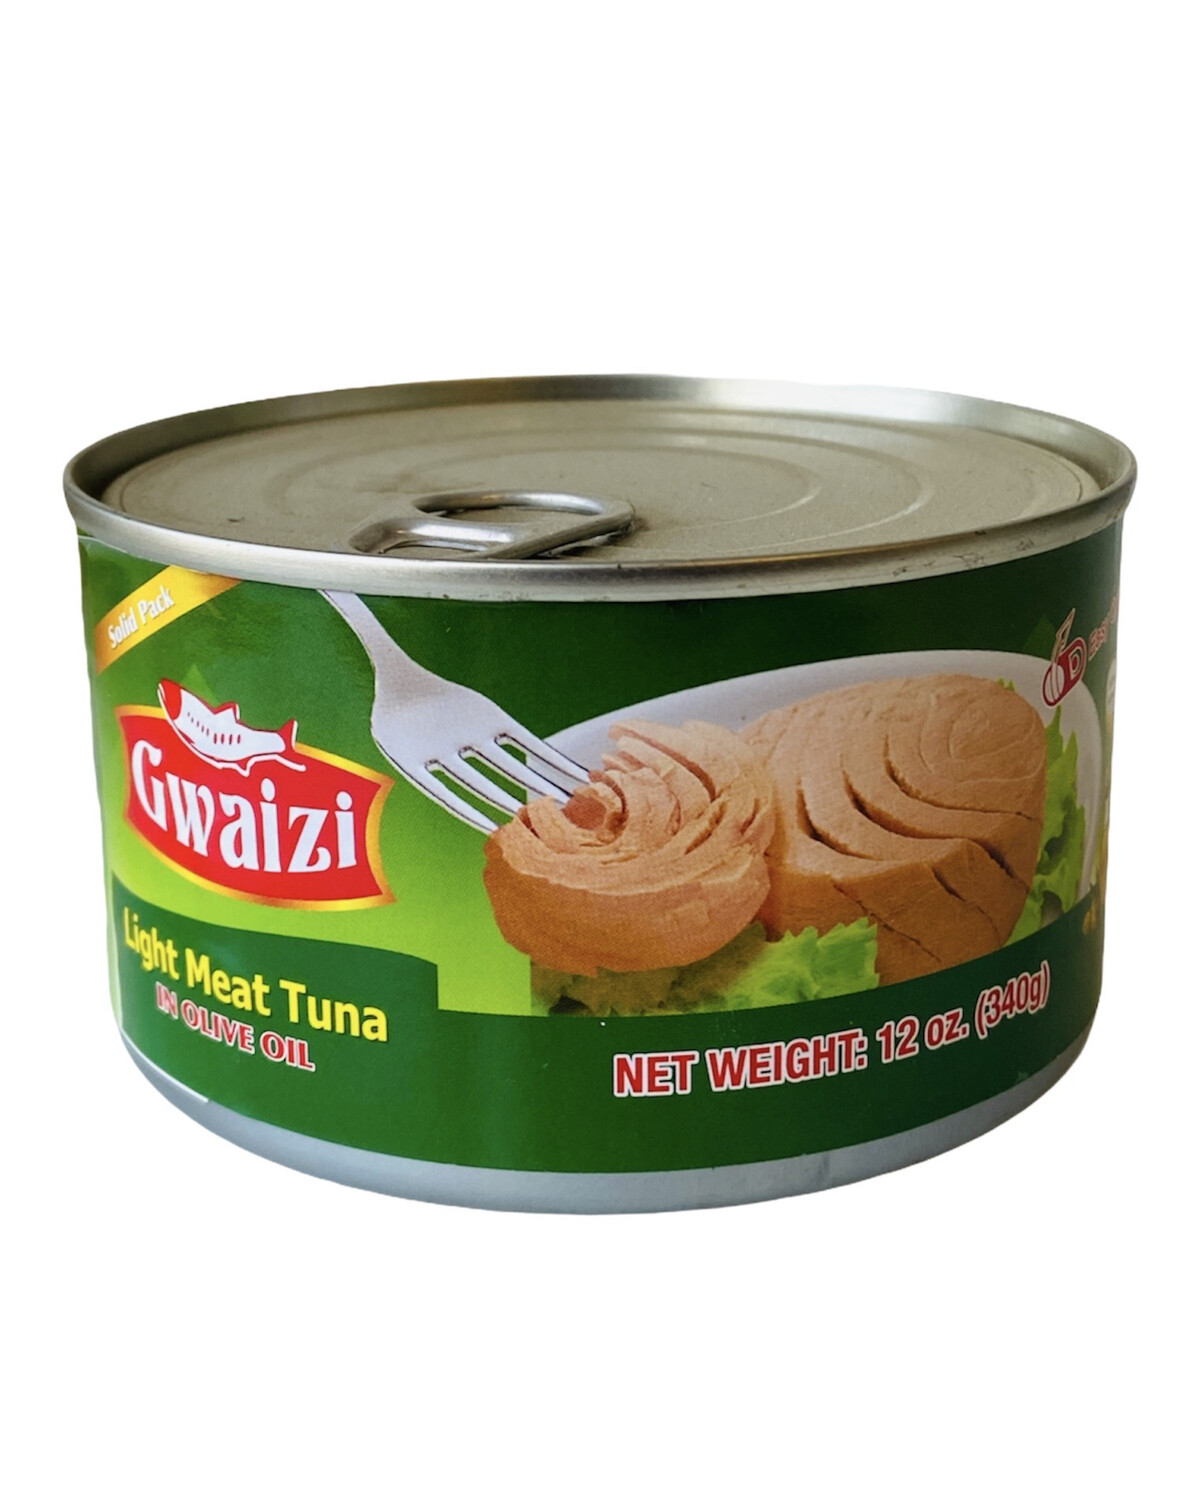 Gwaizi Tuna With Olive Oil Family Size 24x12oz